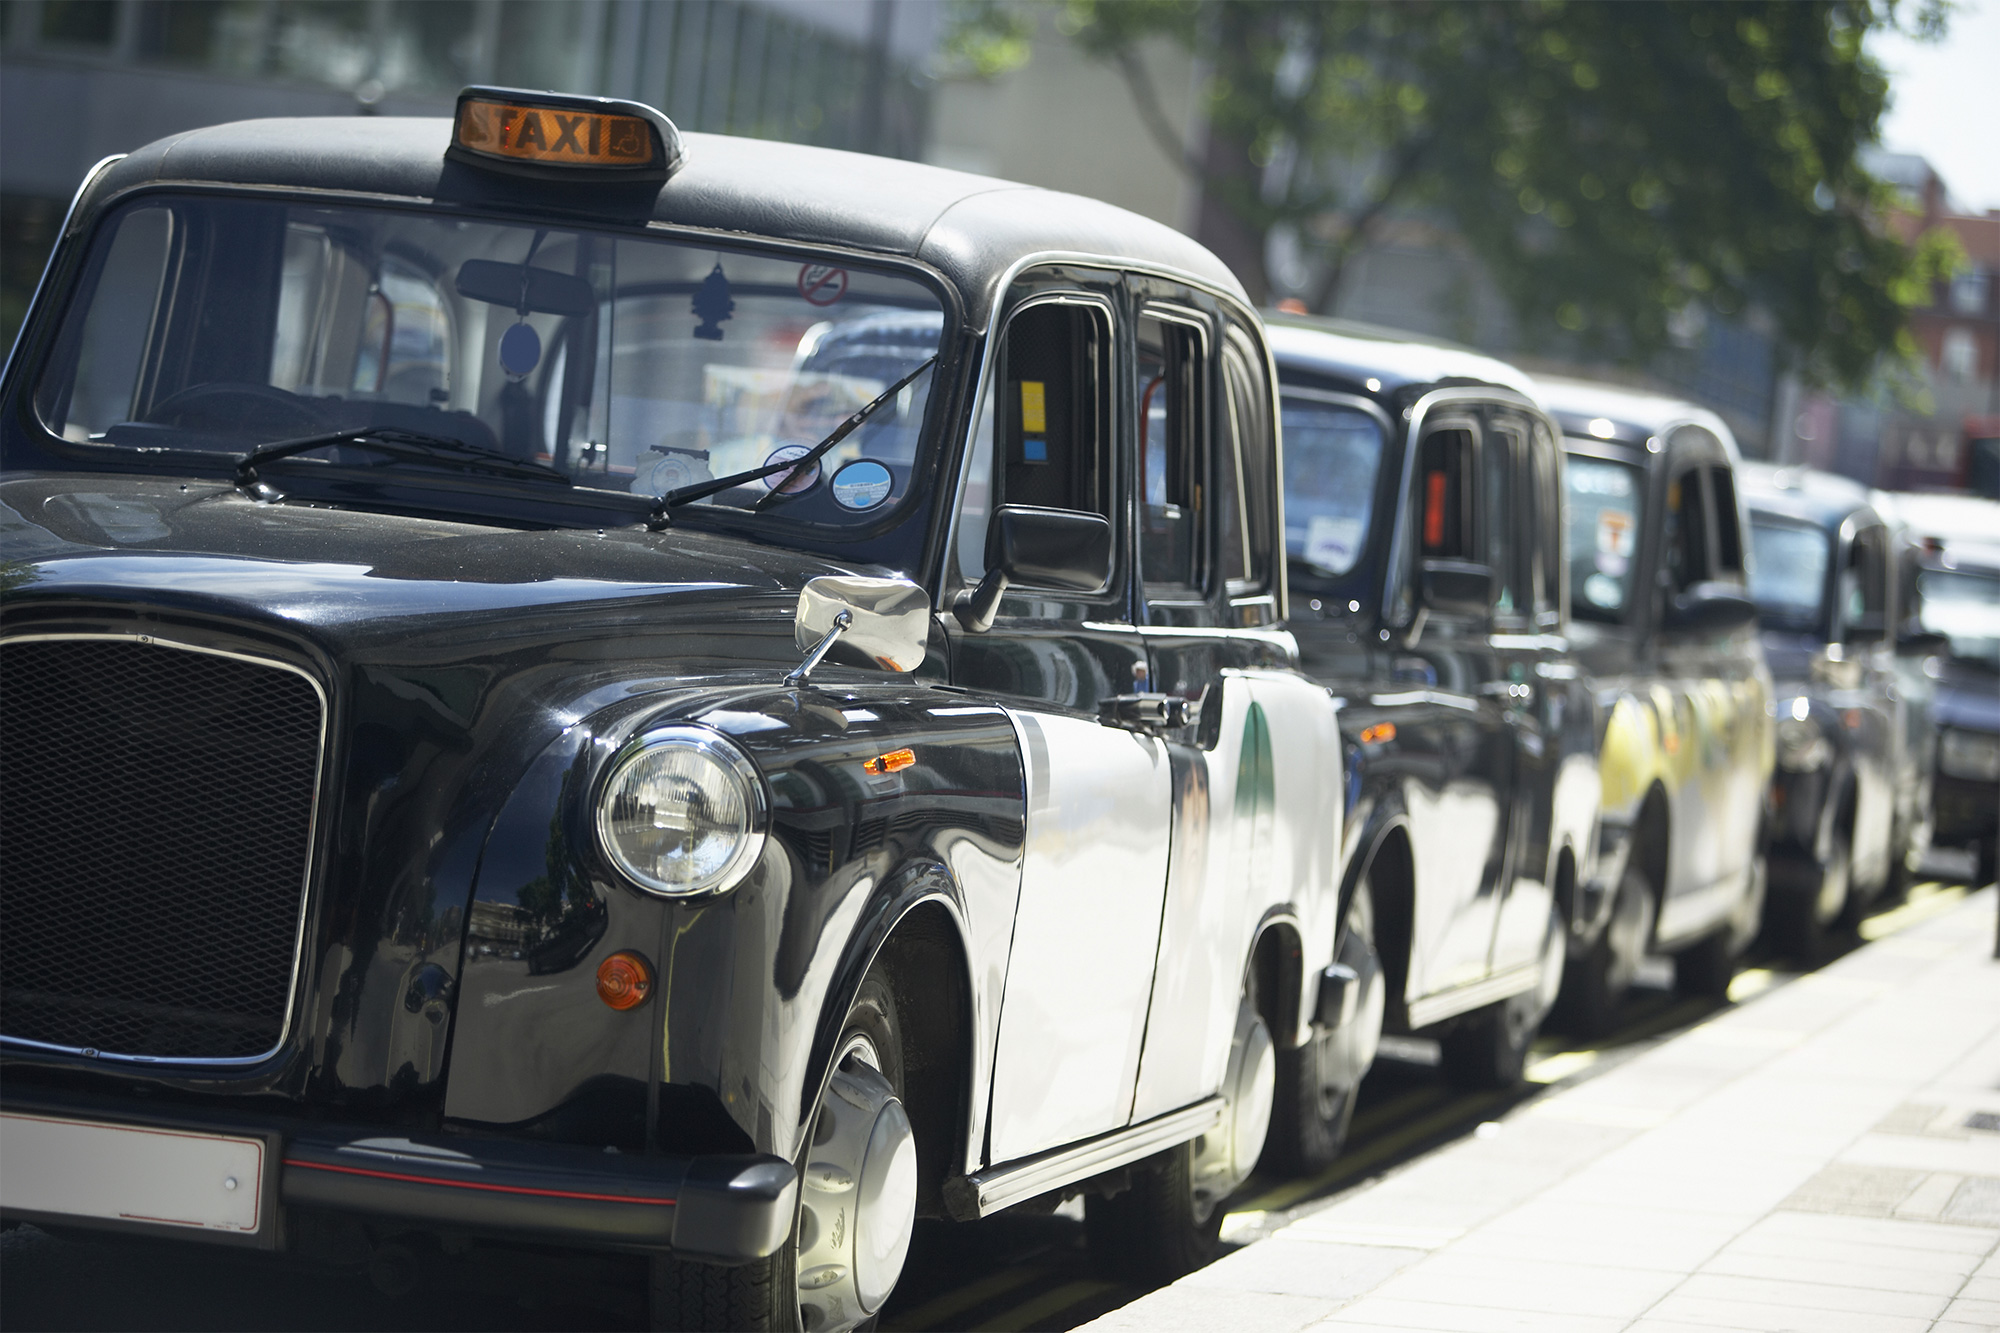 A row of black London Taxis